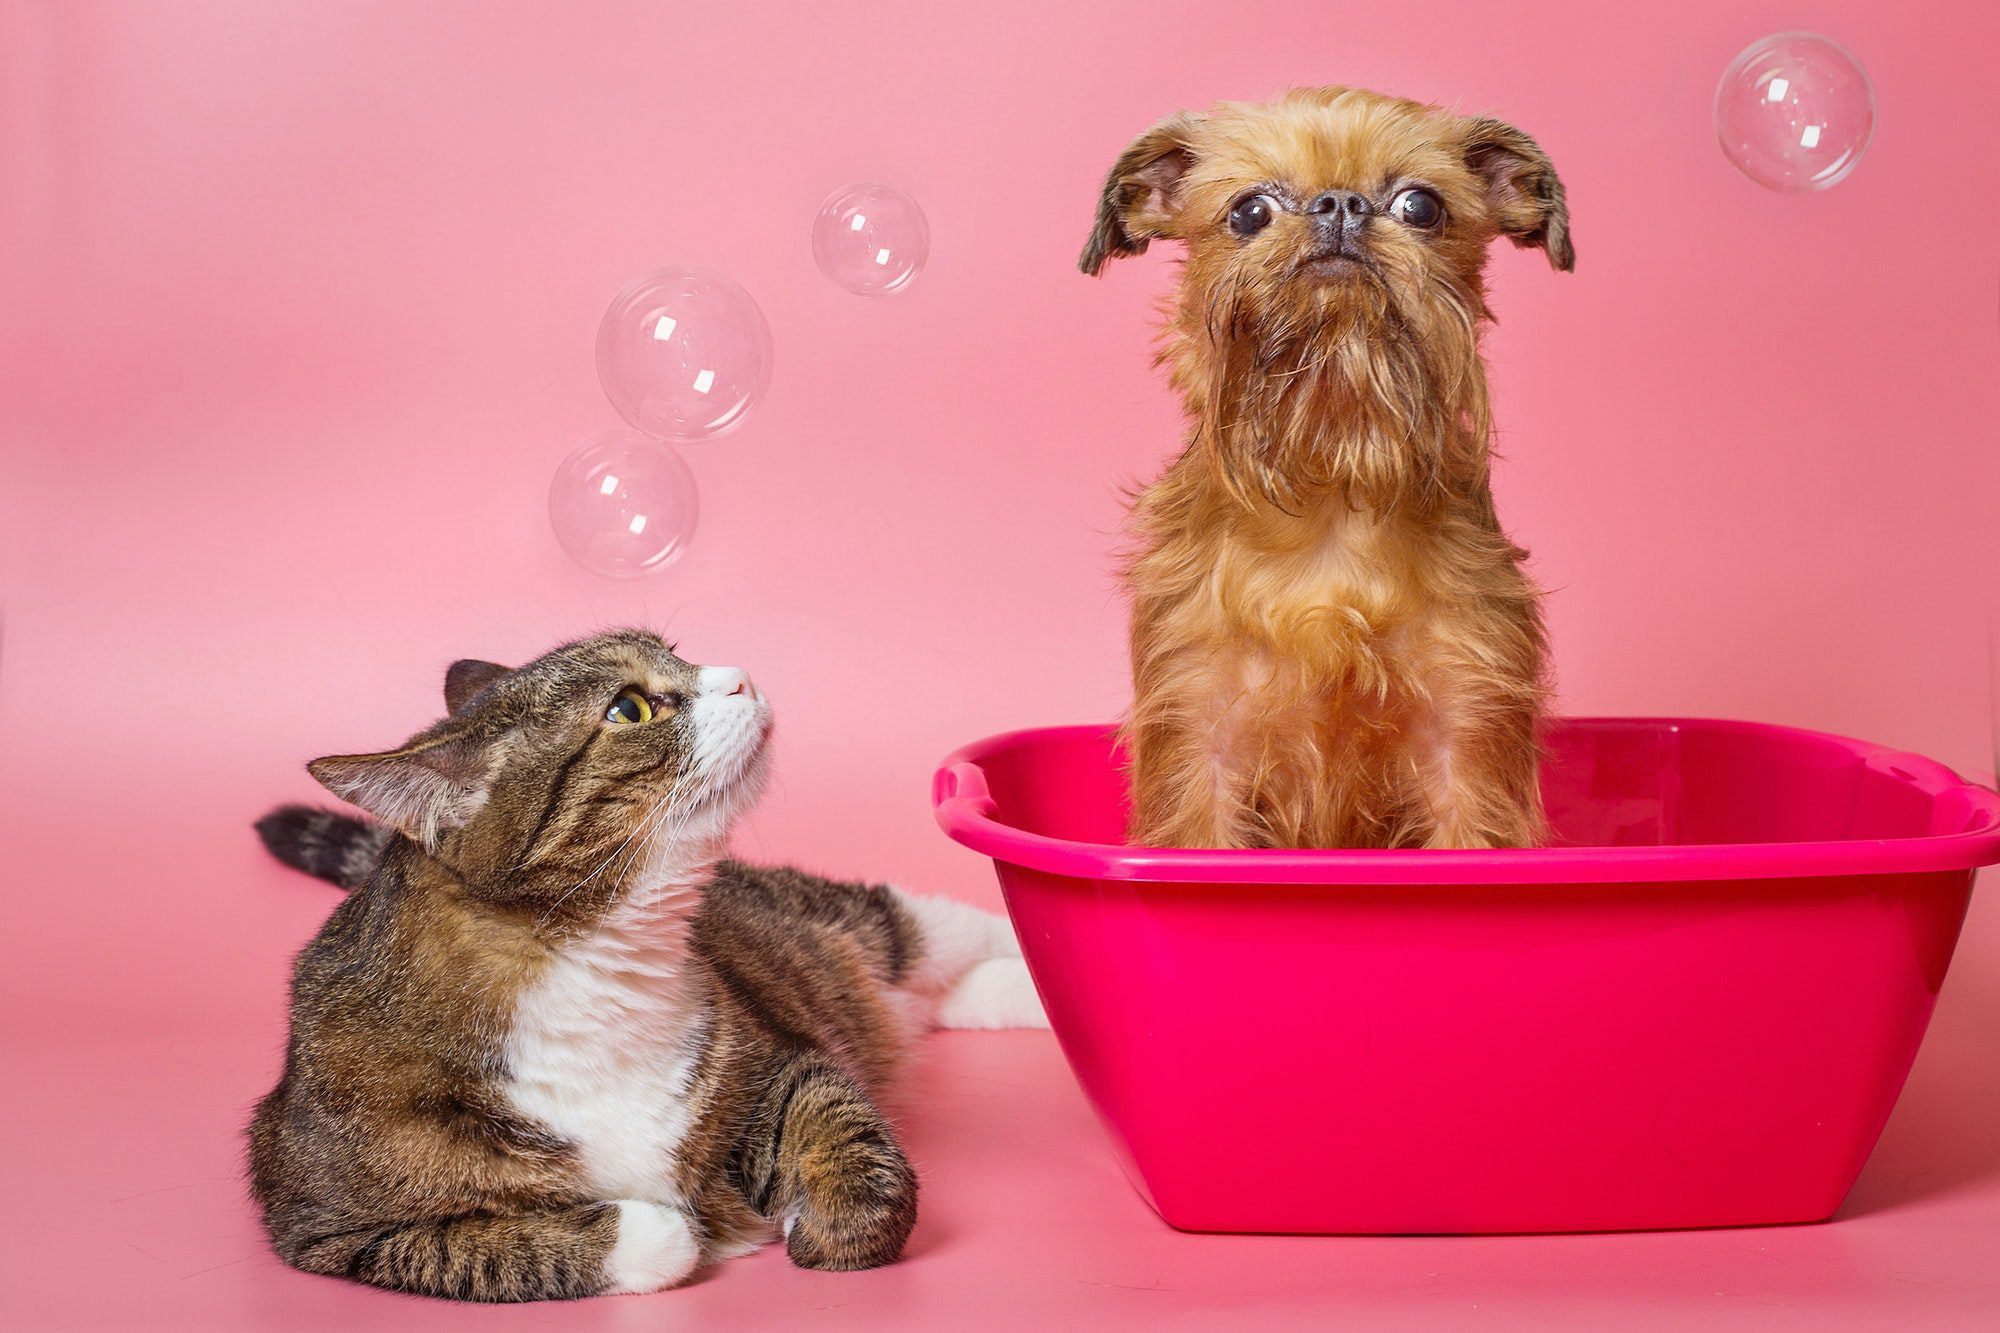 differences between cats and dogs as pets